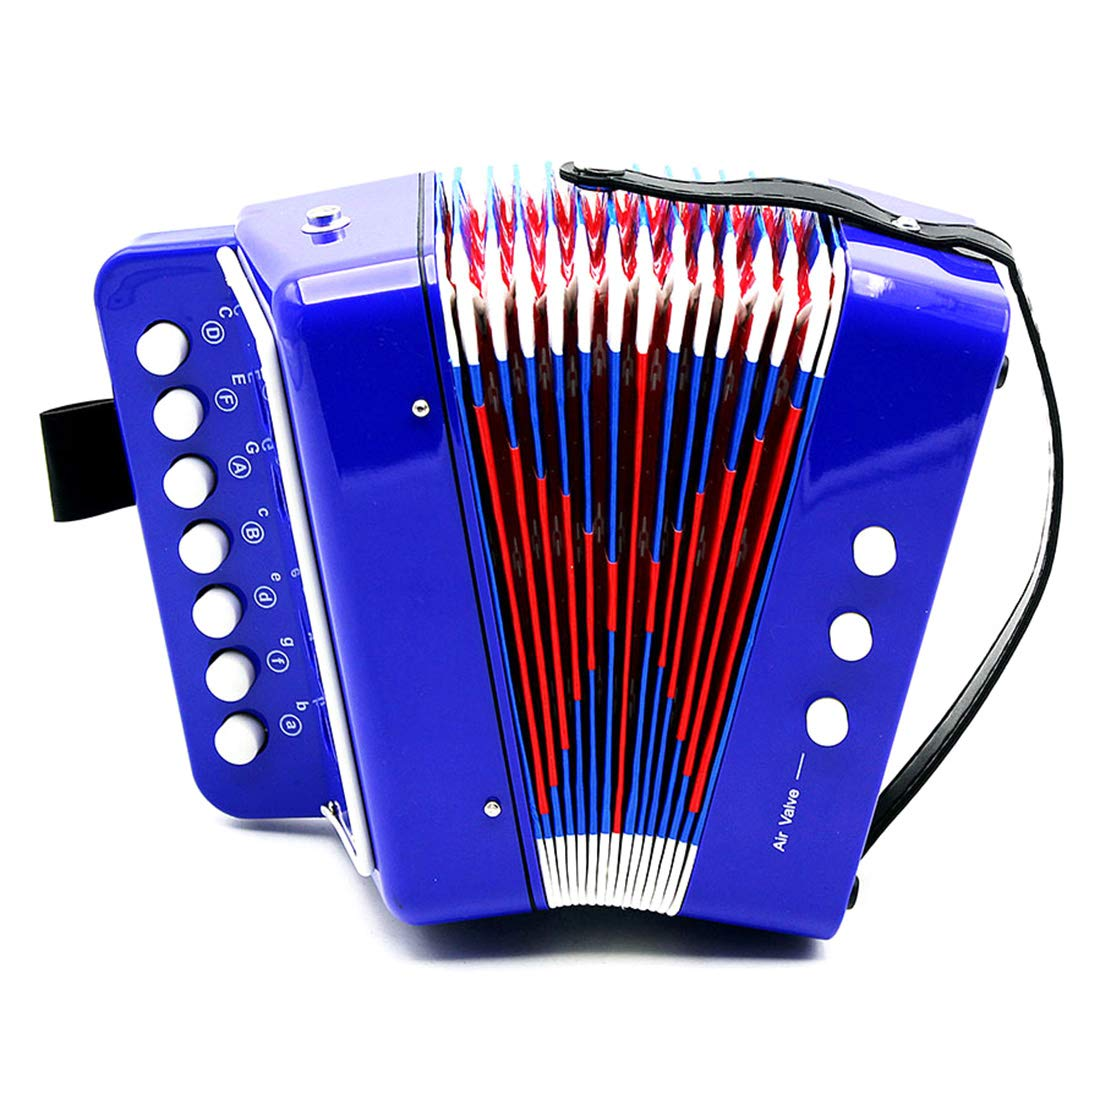 Yamix Kids' Accordion Toy, 10 Keys Toy Accordion Musical Toy Instrument for Early Childhood Learning Teaching